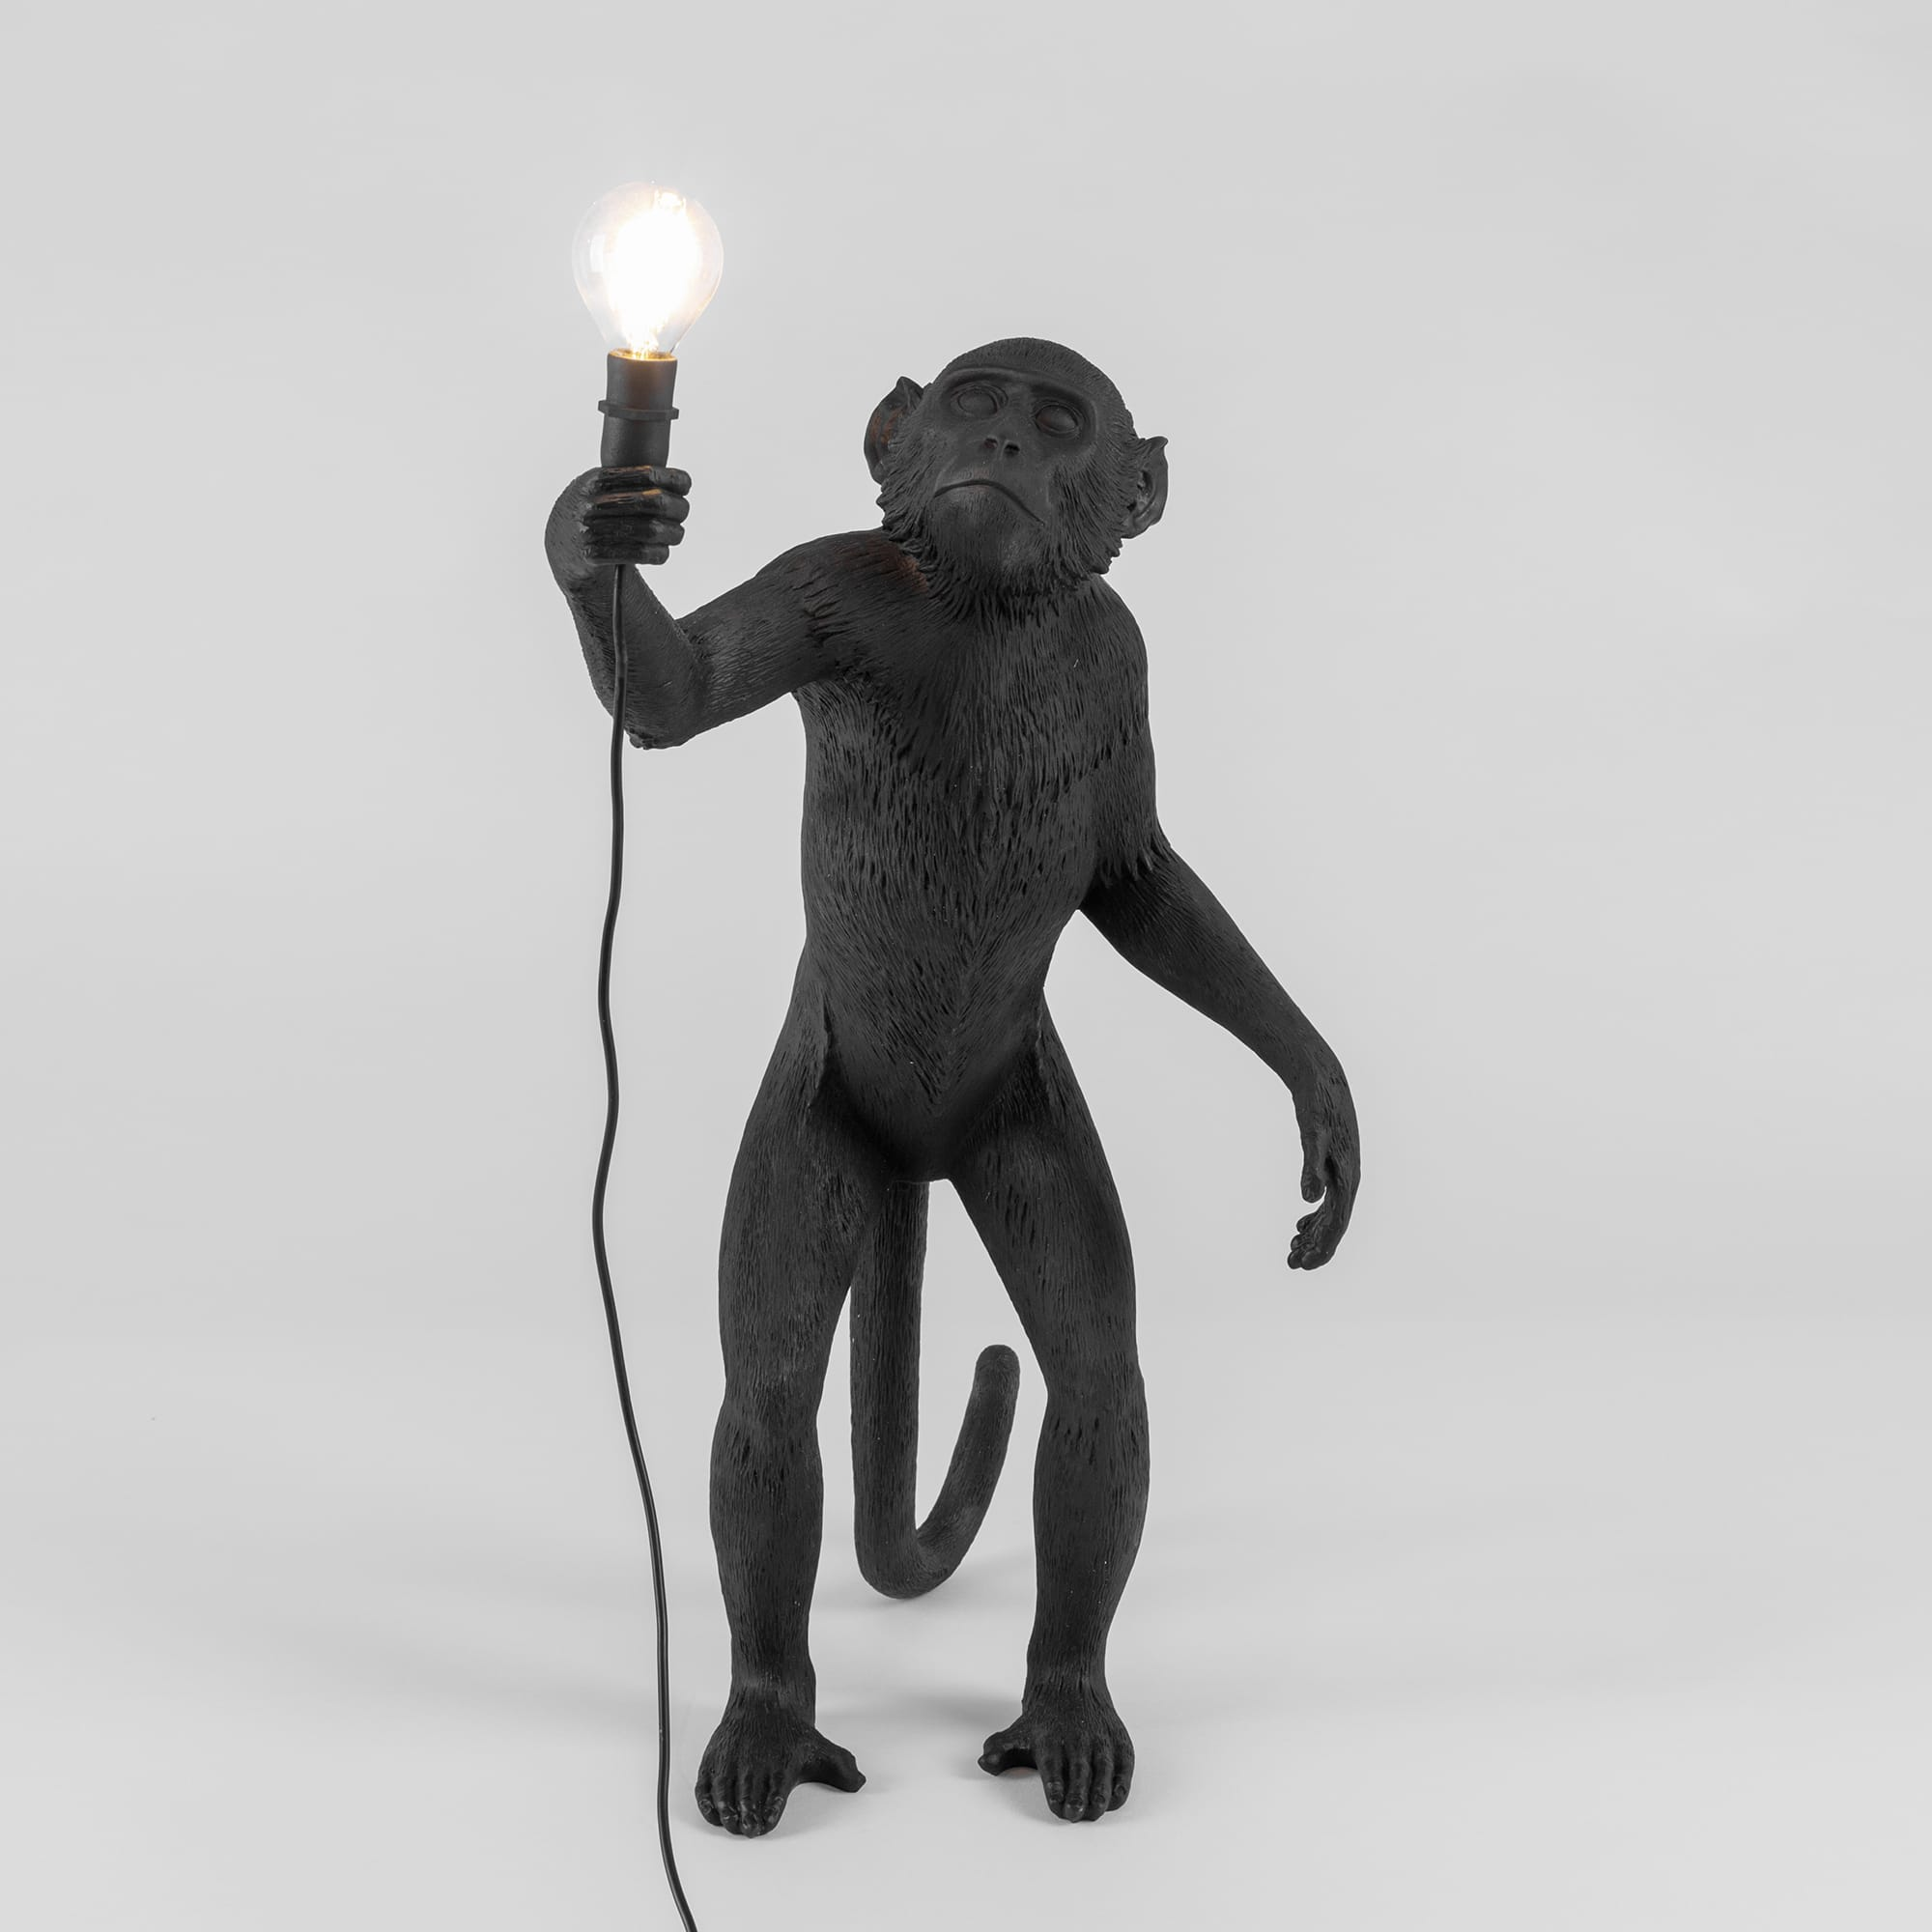 Lamp Seletti The Monkey Black Standing Version Interior Design